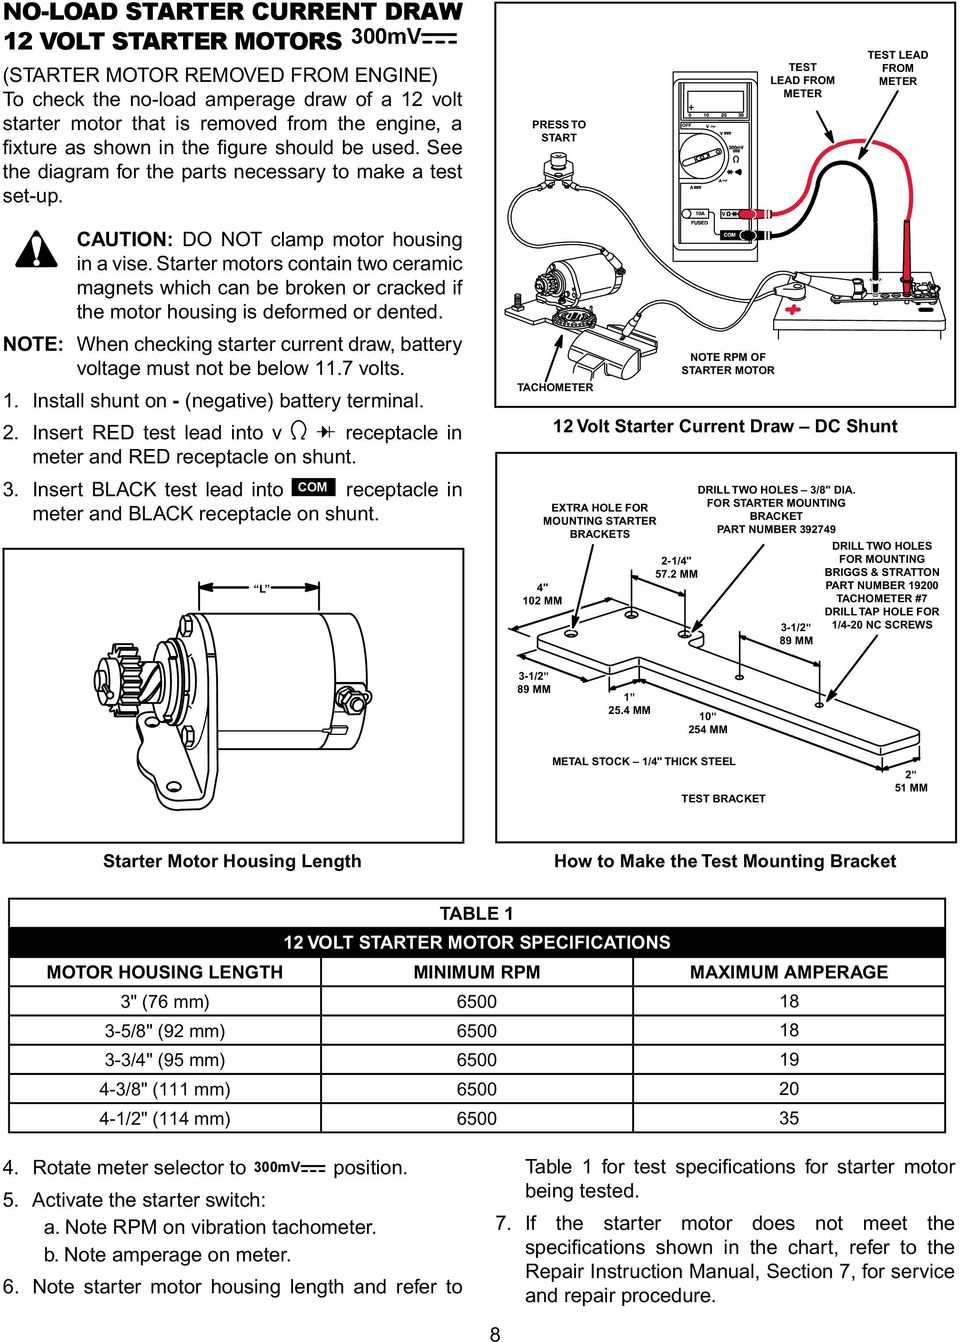 Engine Alternator Repower Guide Pdf 10 0 Briggs Stratton Motor Wiring Diagram Press To Start Test Lead From Meter Caution Do Not Clamp